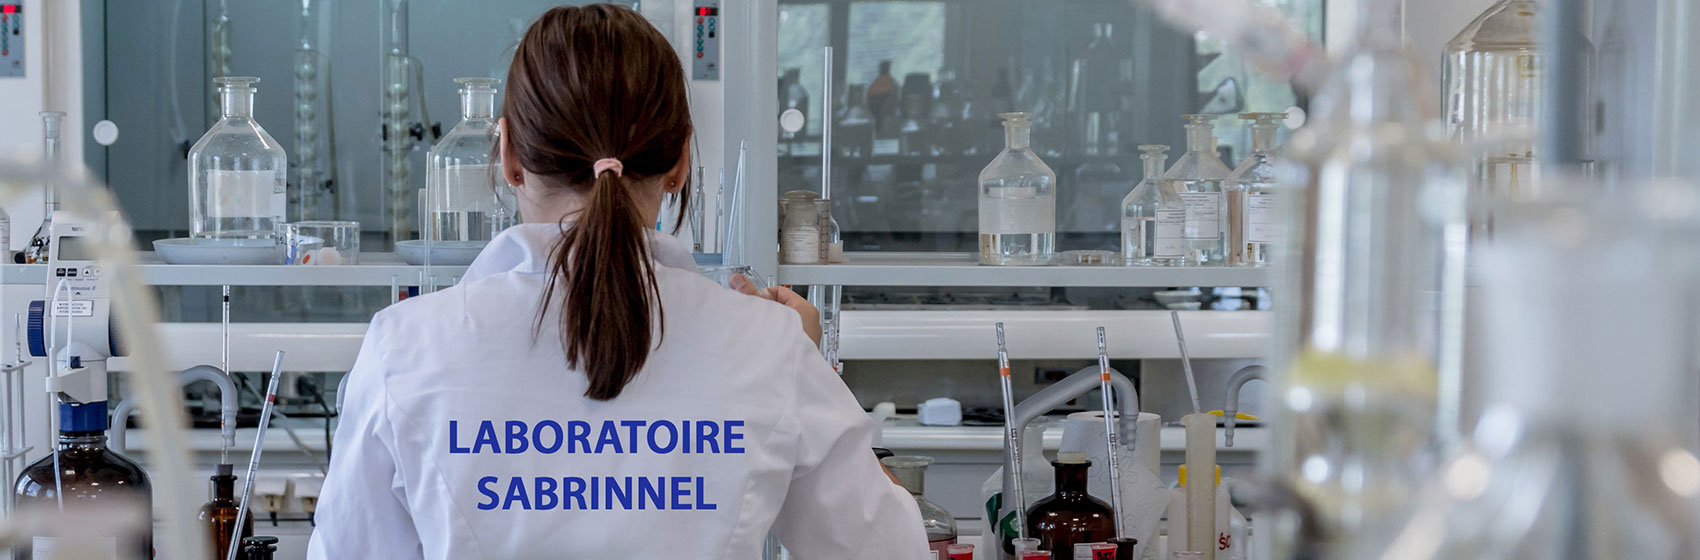 Laboratoire SABRINNEL